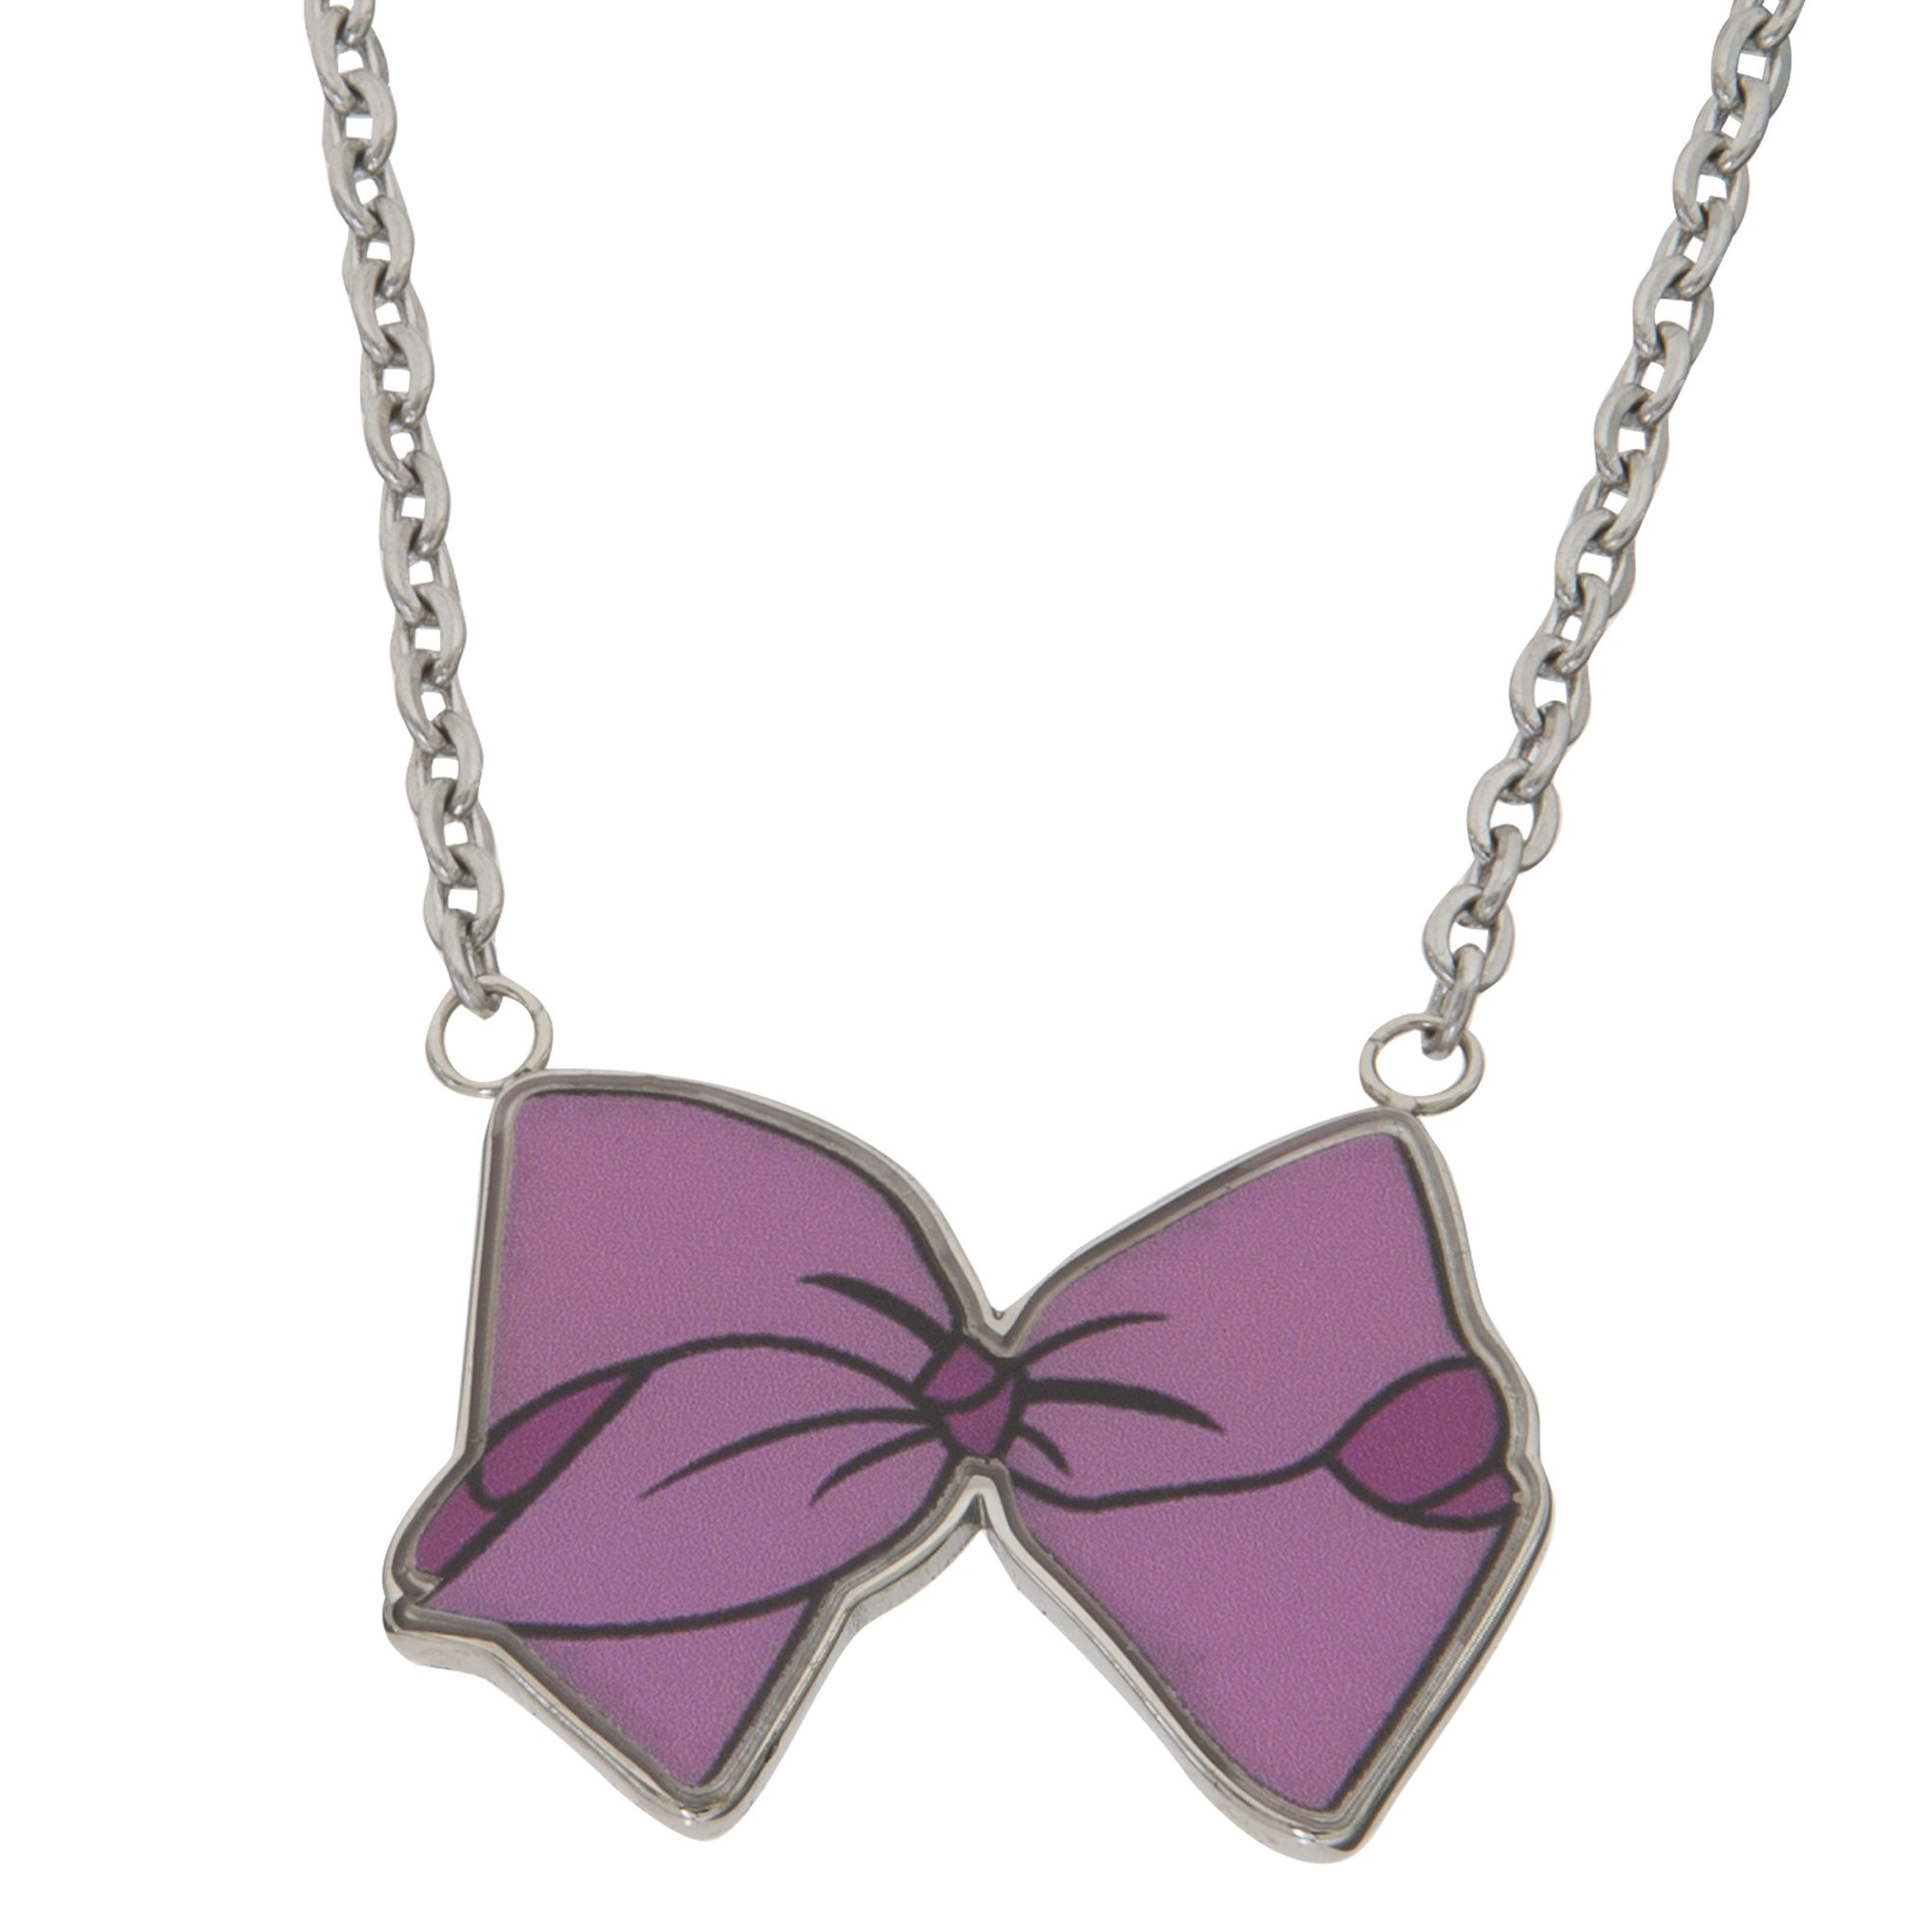 realreal wang bow pendant vera necklaces the products jewelry enlarged diamond necklace